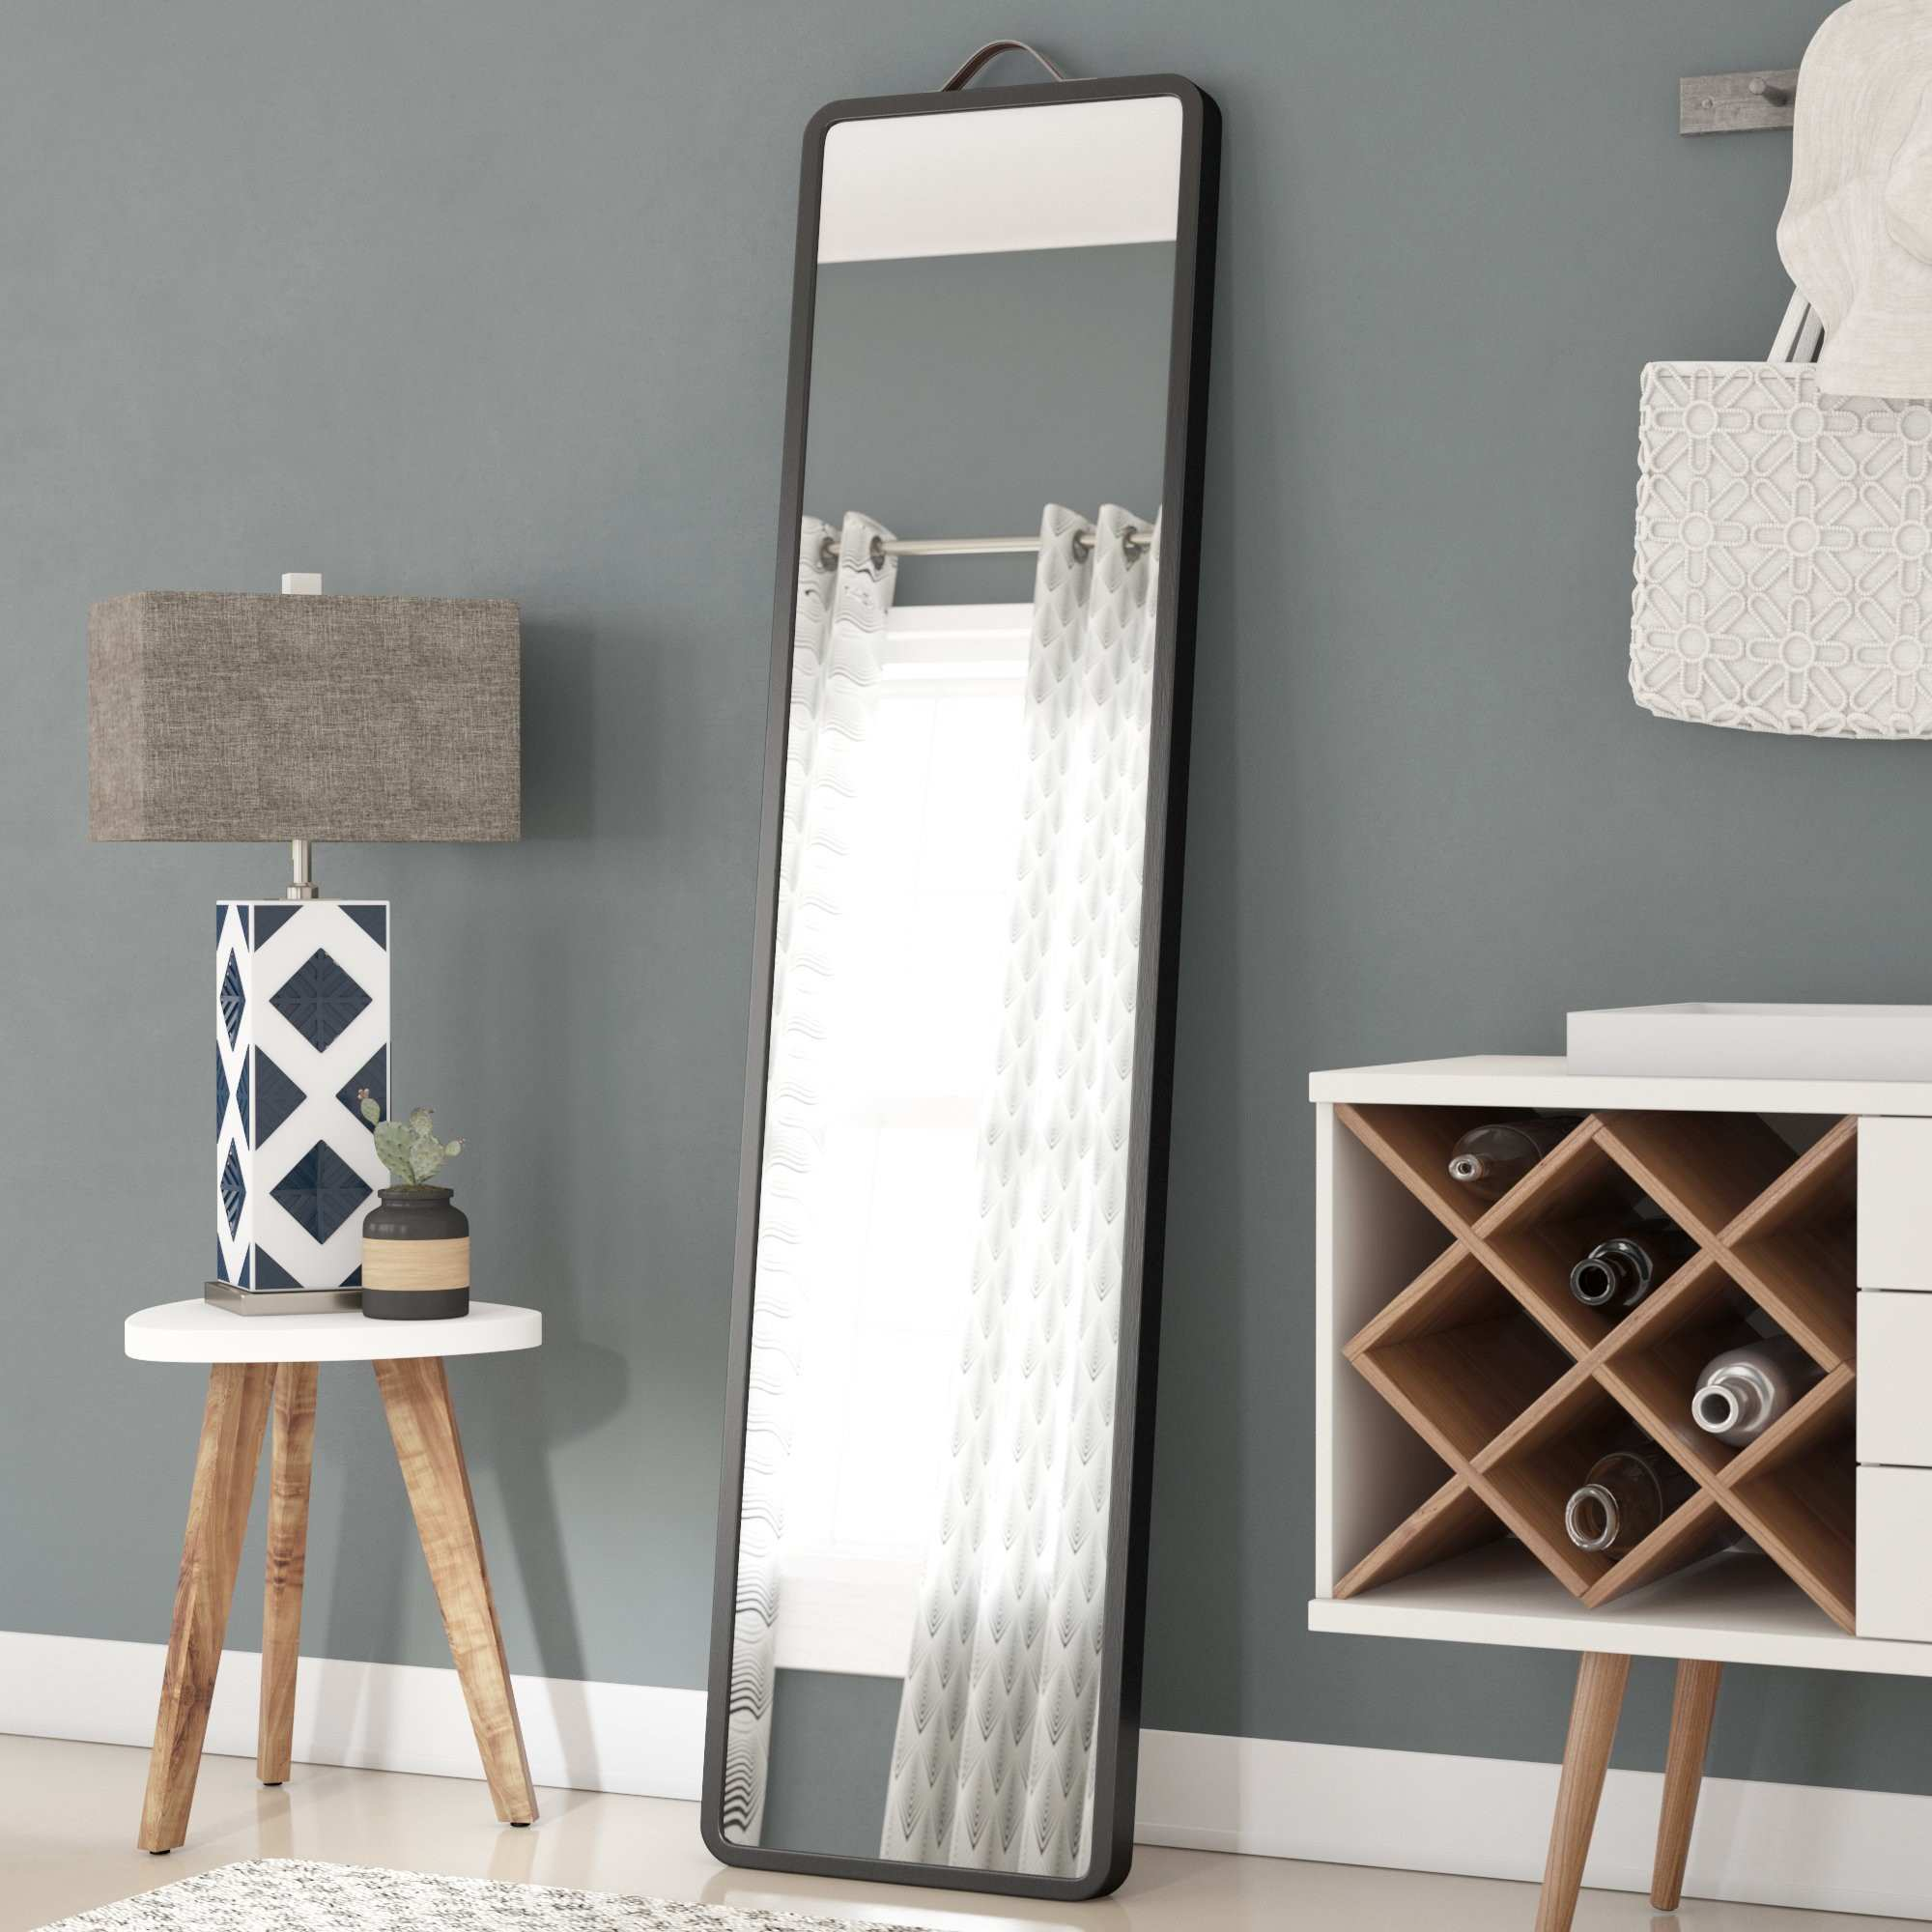 Small Round Decorative Wall Mirrors New Latitude Run Modern Floor